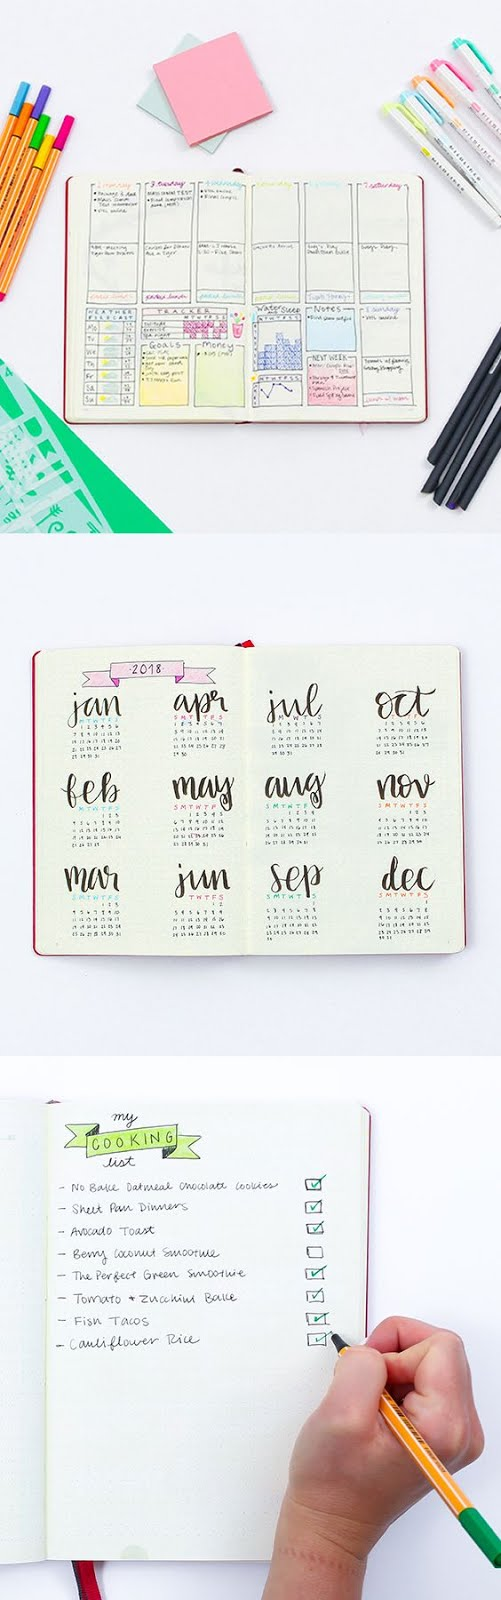 bullet journaling 101 from marleylilly.com